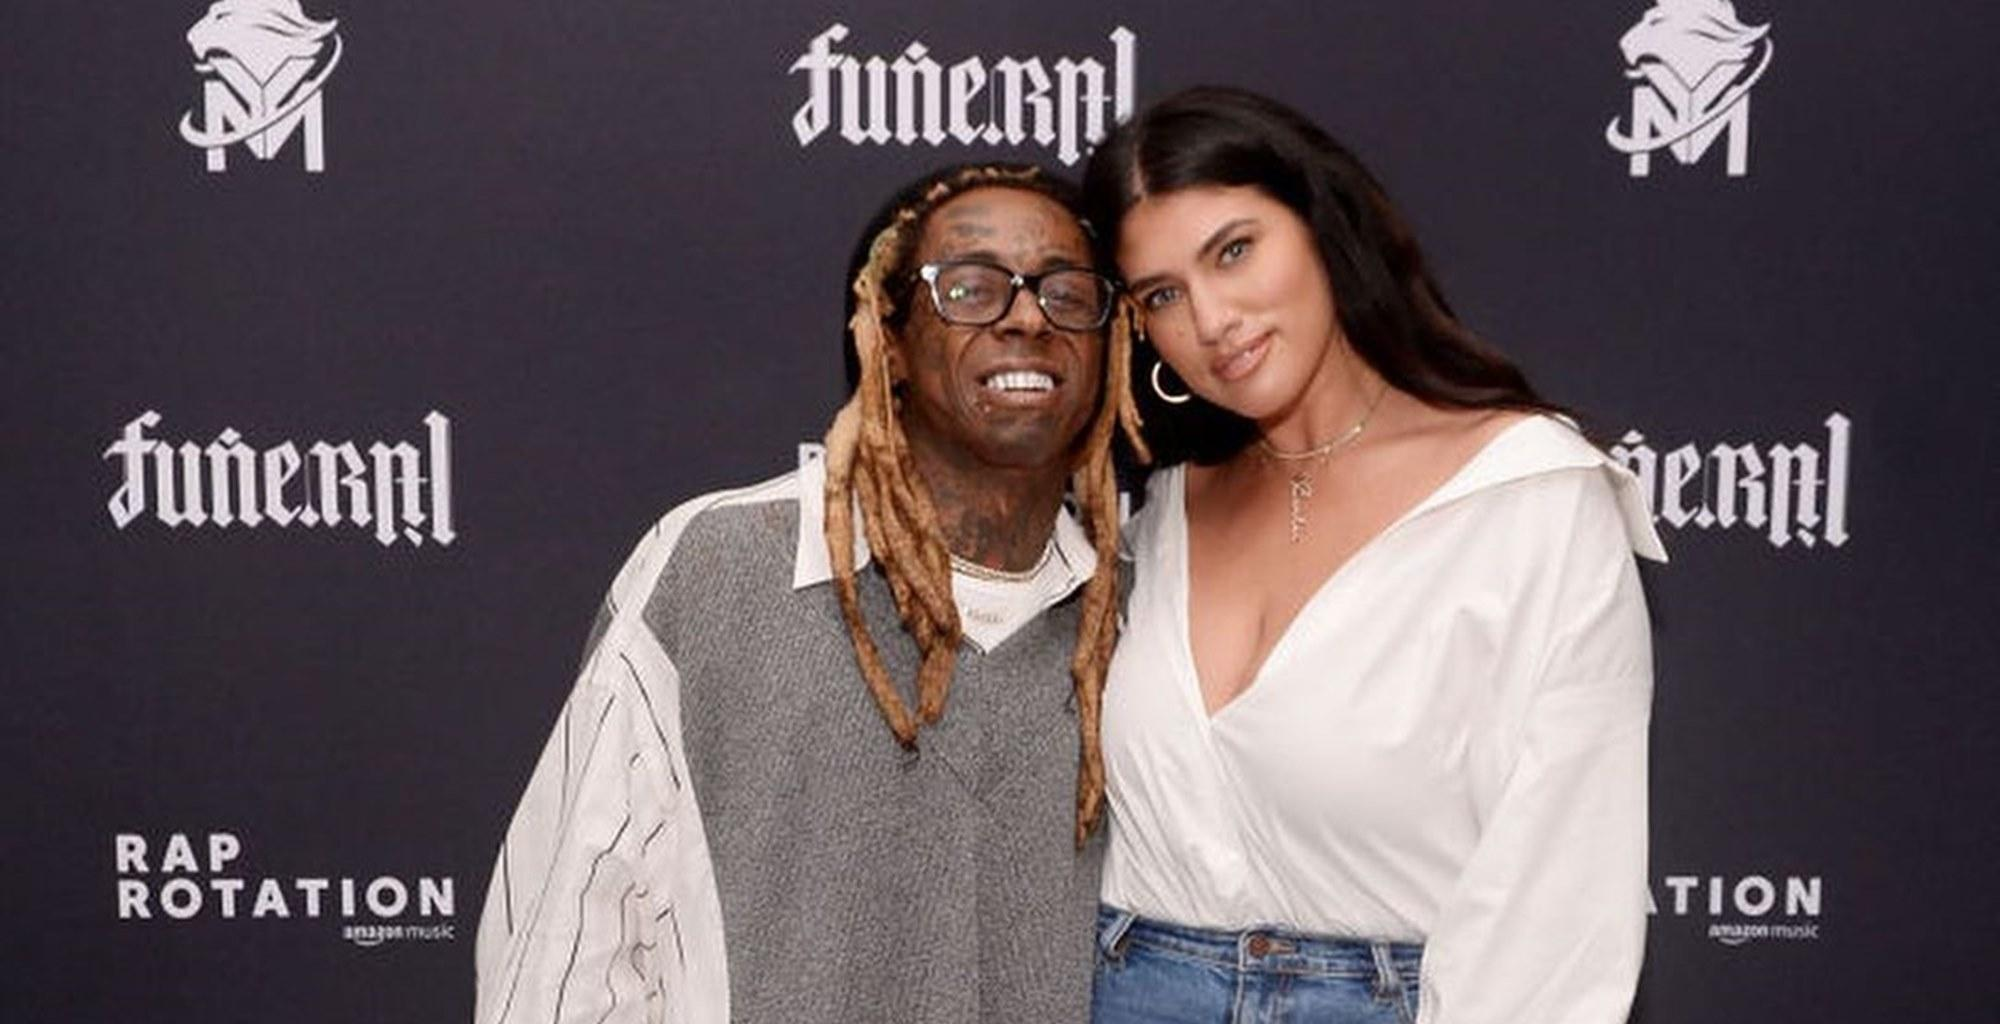 Lil Wayne And Fiancée La'Tecia Thomas Debut Matching Explosive Tattoos In New Lovey-Dovey Photos Ahead Of Wedding